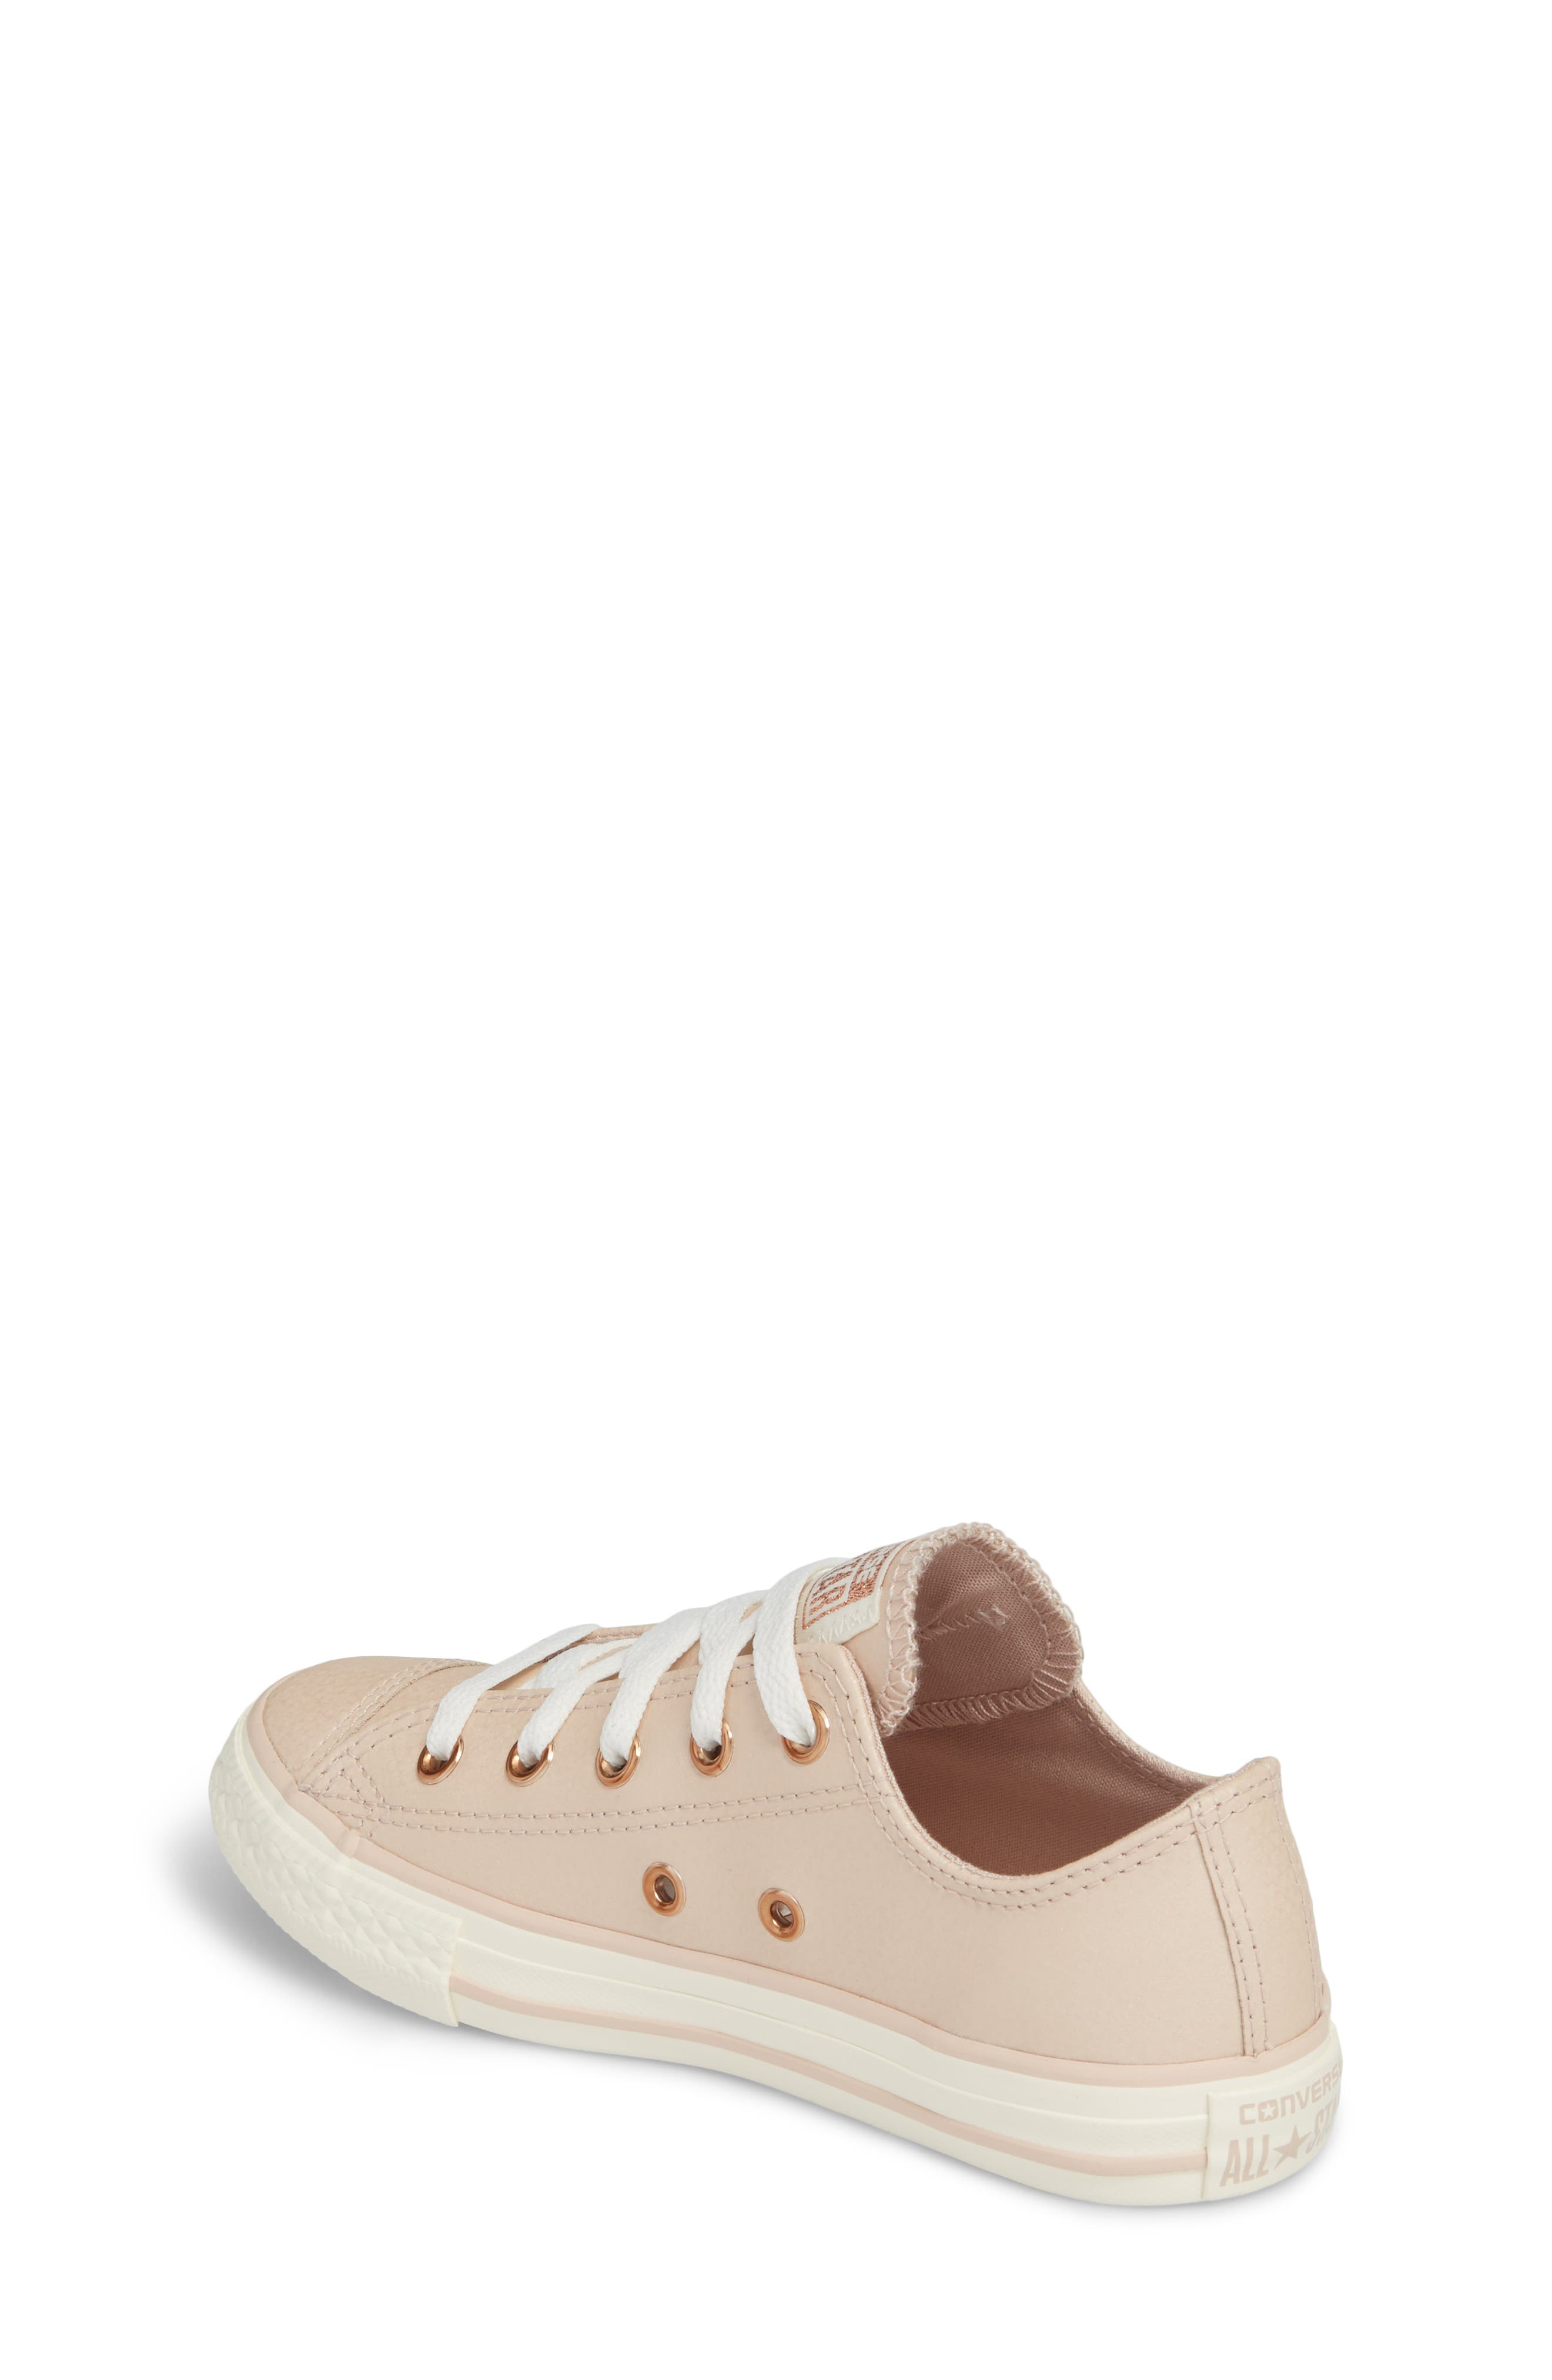 All Star<sup>®</sup> Fashion Low Top Sneaker,                             Alternate thumbnail 2, color,                             Particle Beige